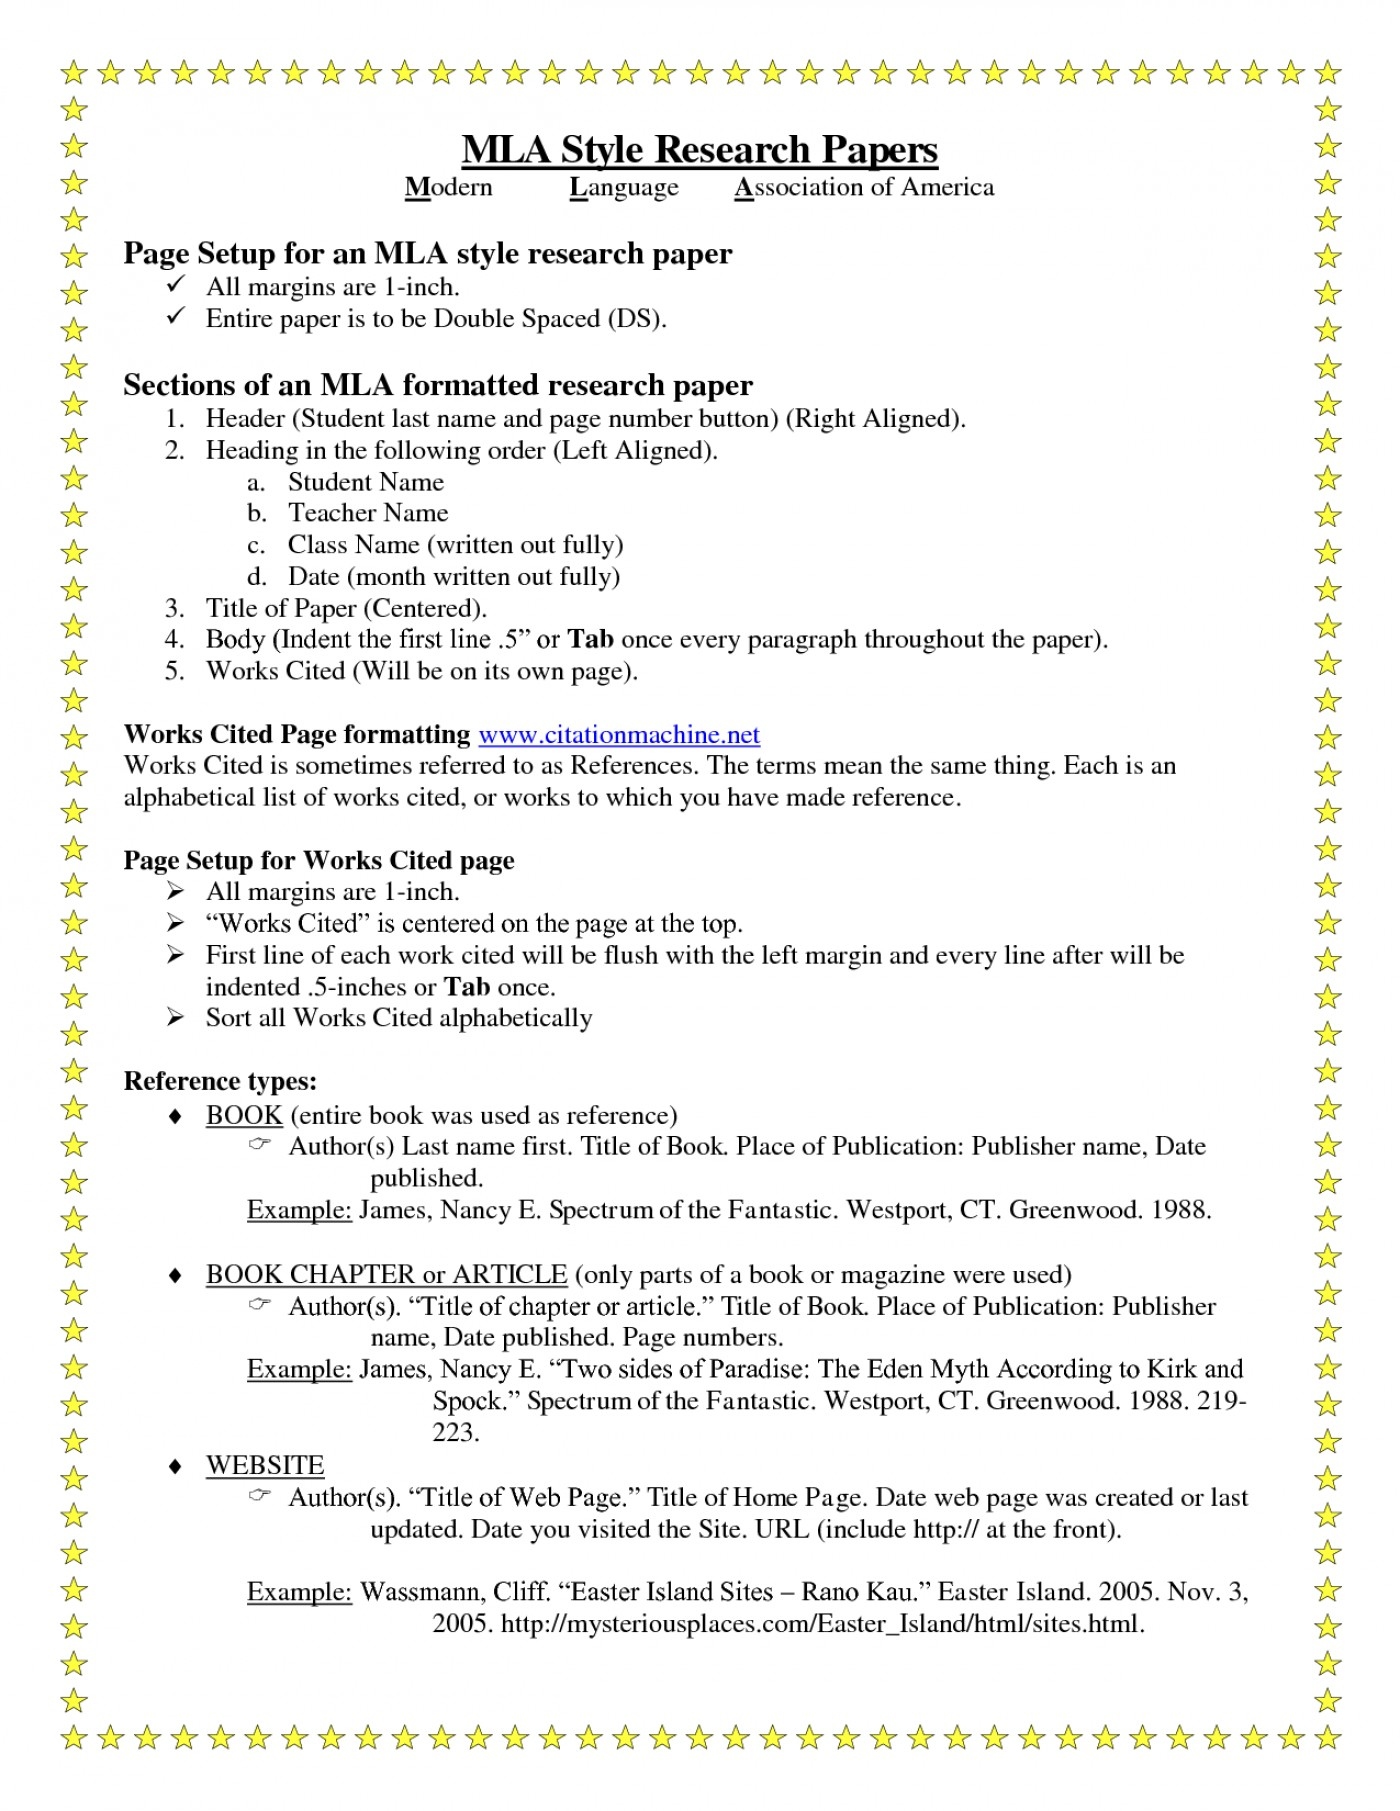 008 Research Paper Proper Order Of Sections In Apa Format Marvelous A 1400